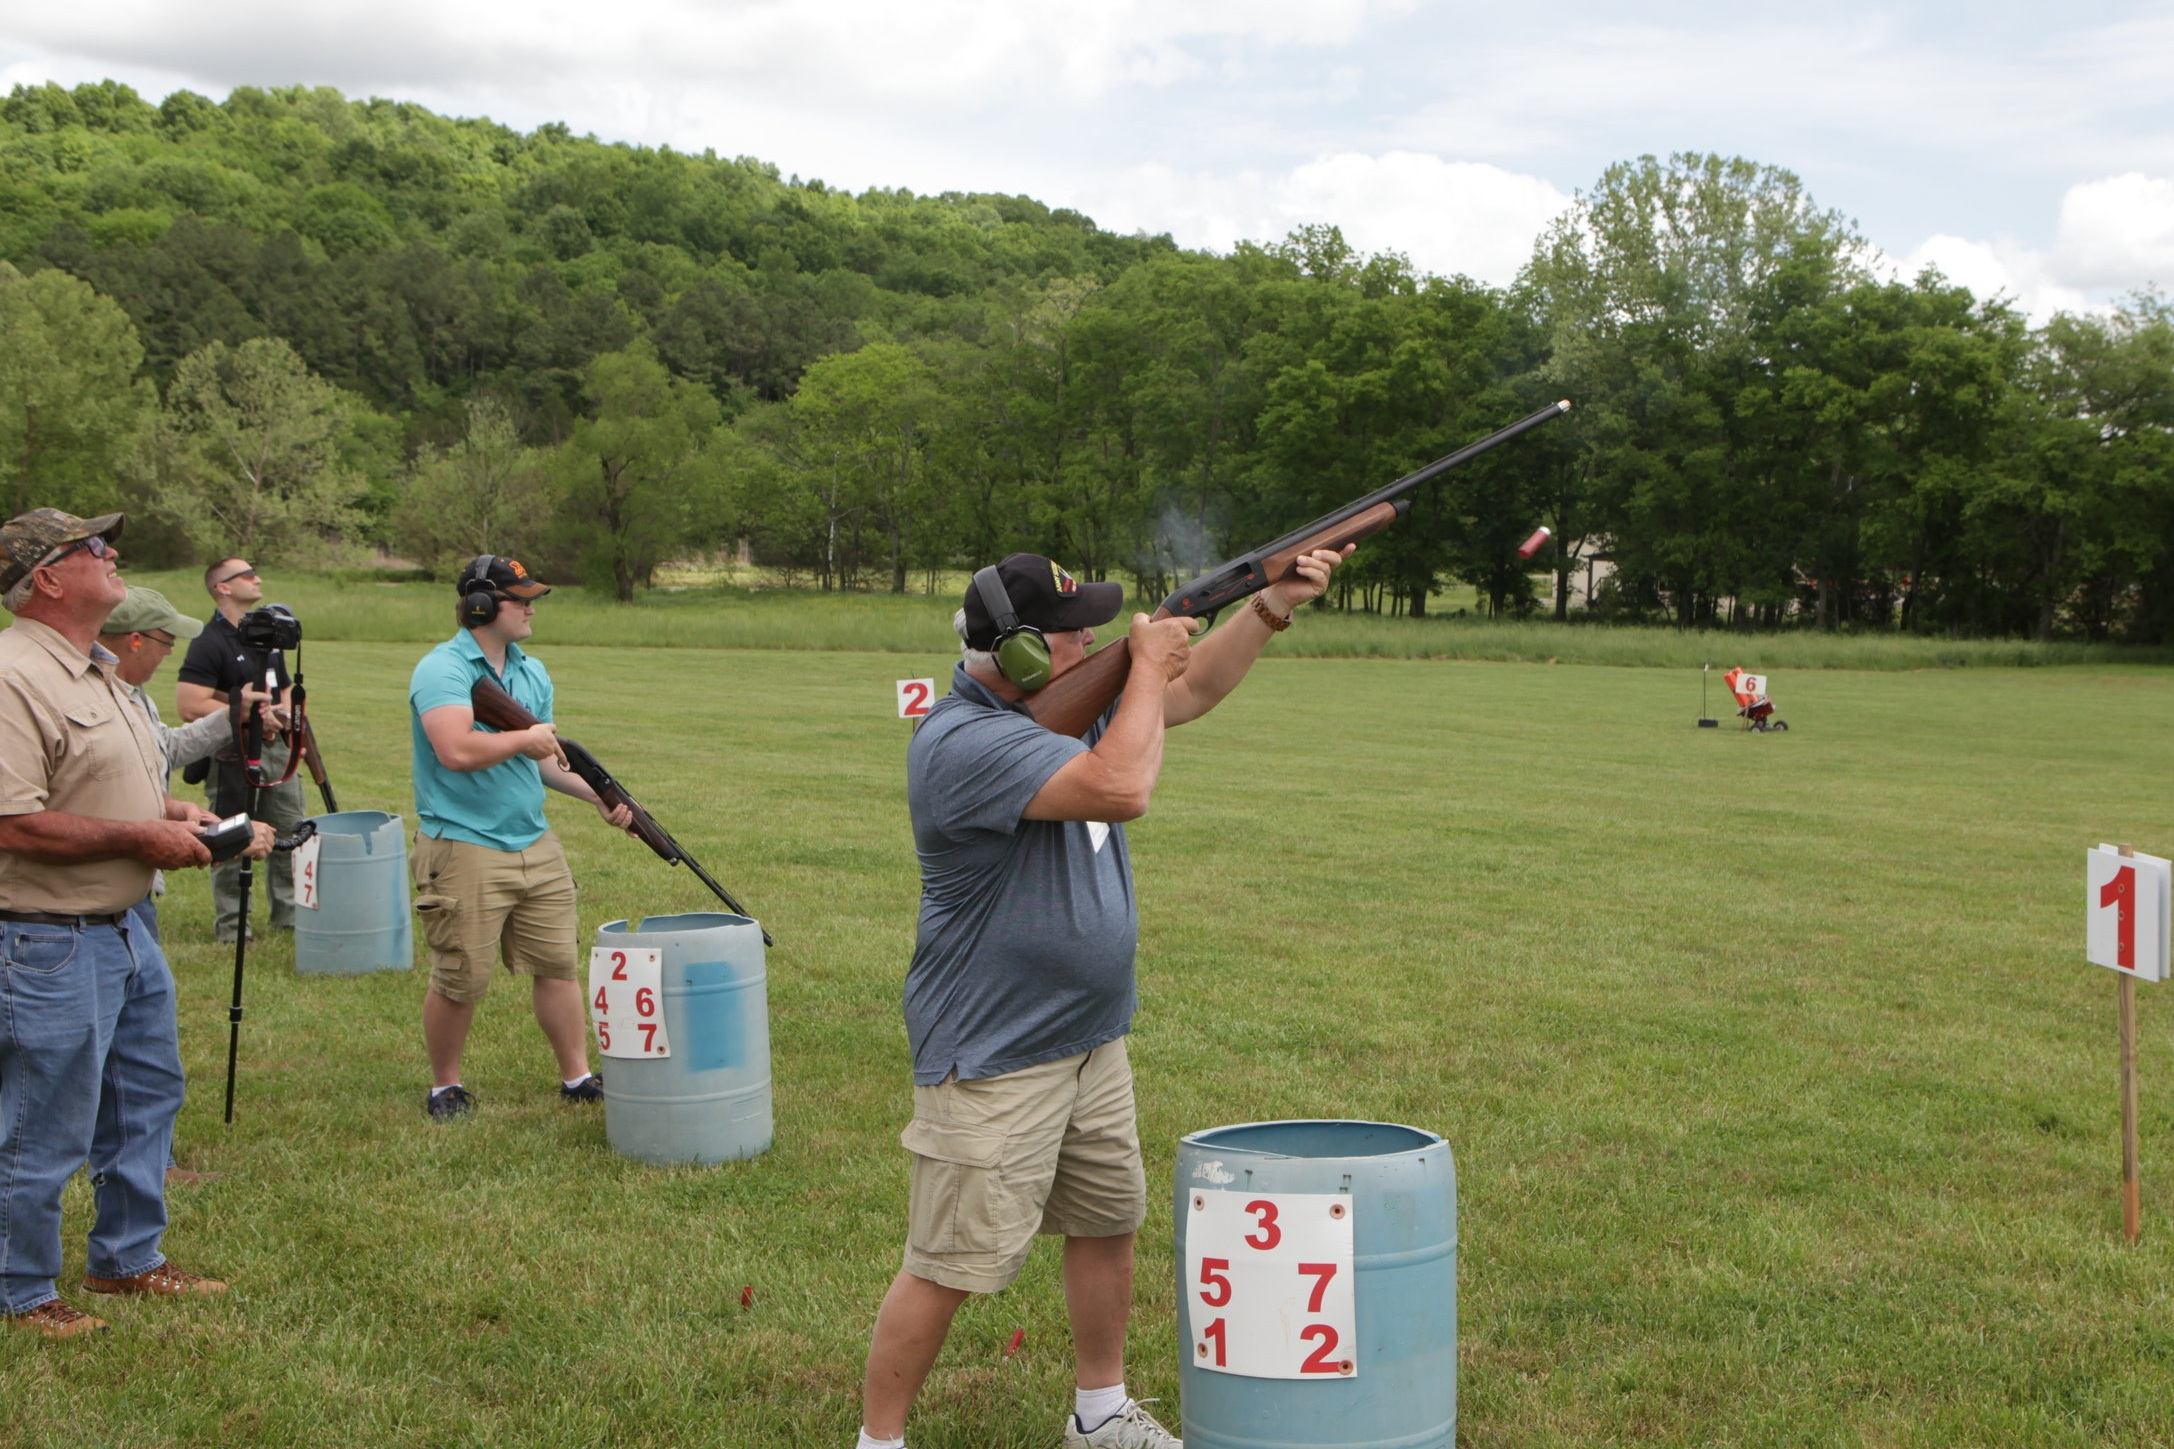 A shooter tests one of Beretta's top-of-the-line shotguns.